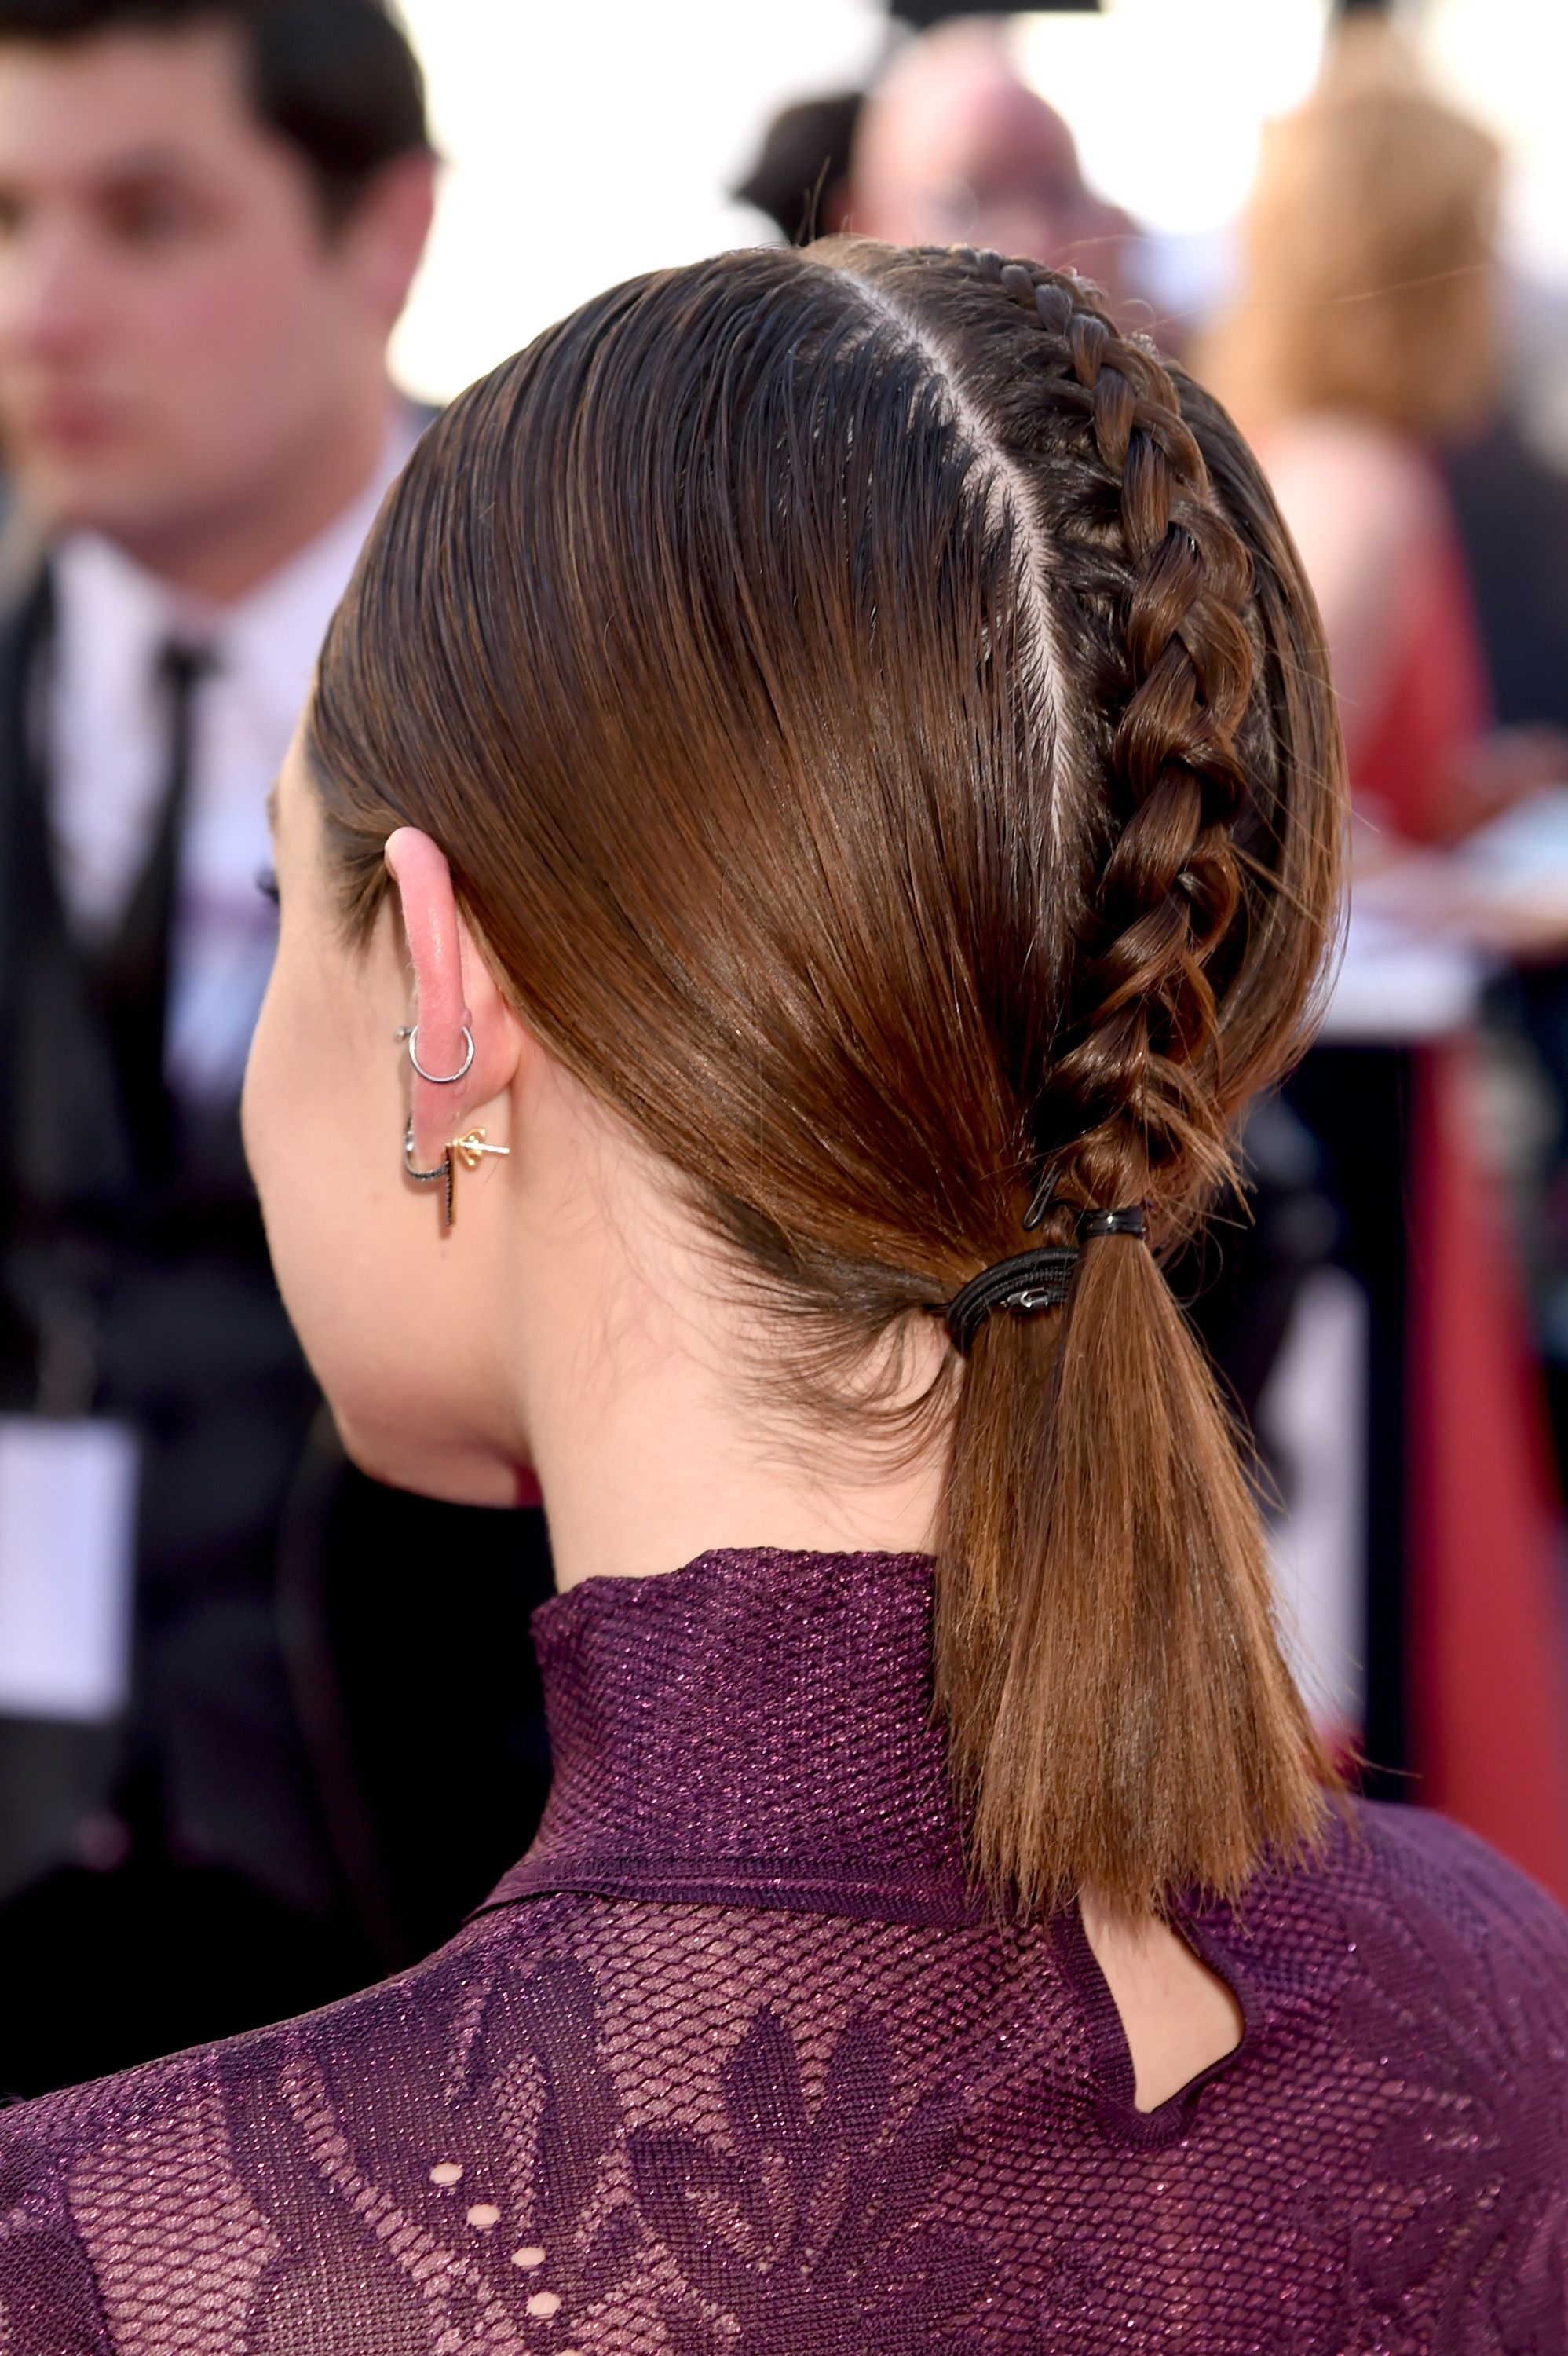 46 Best Braided Hairstyles For 2020 Braid Ideas For Women